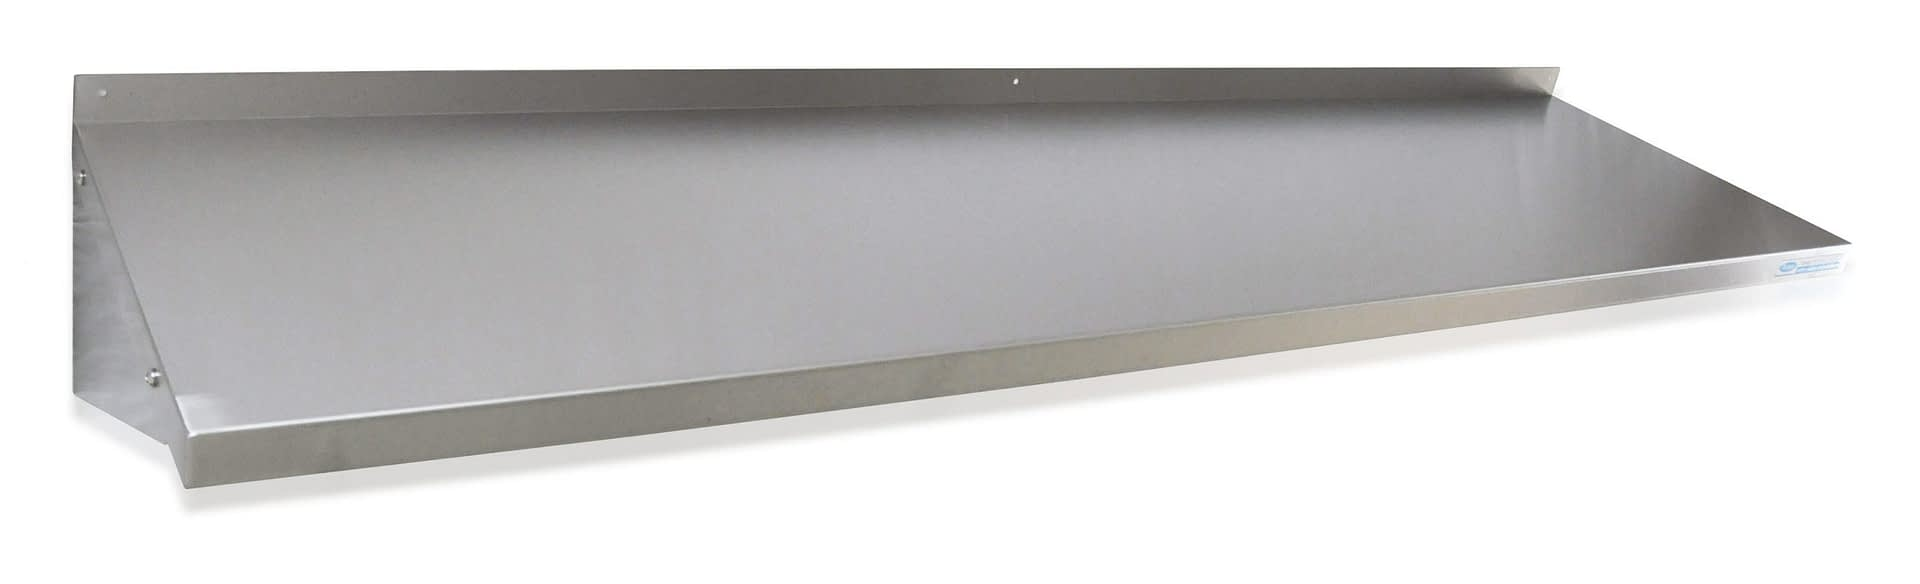 Stainless Steel Solid Wall Shelf, 1800 X 450mm deep